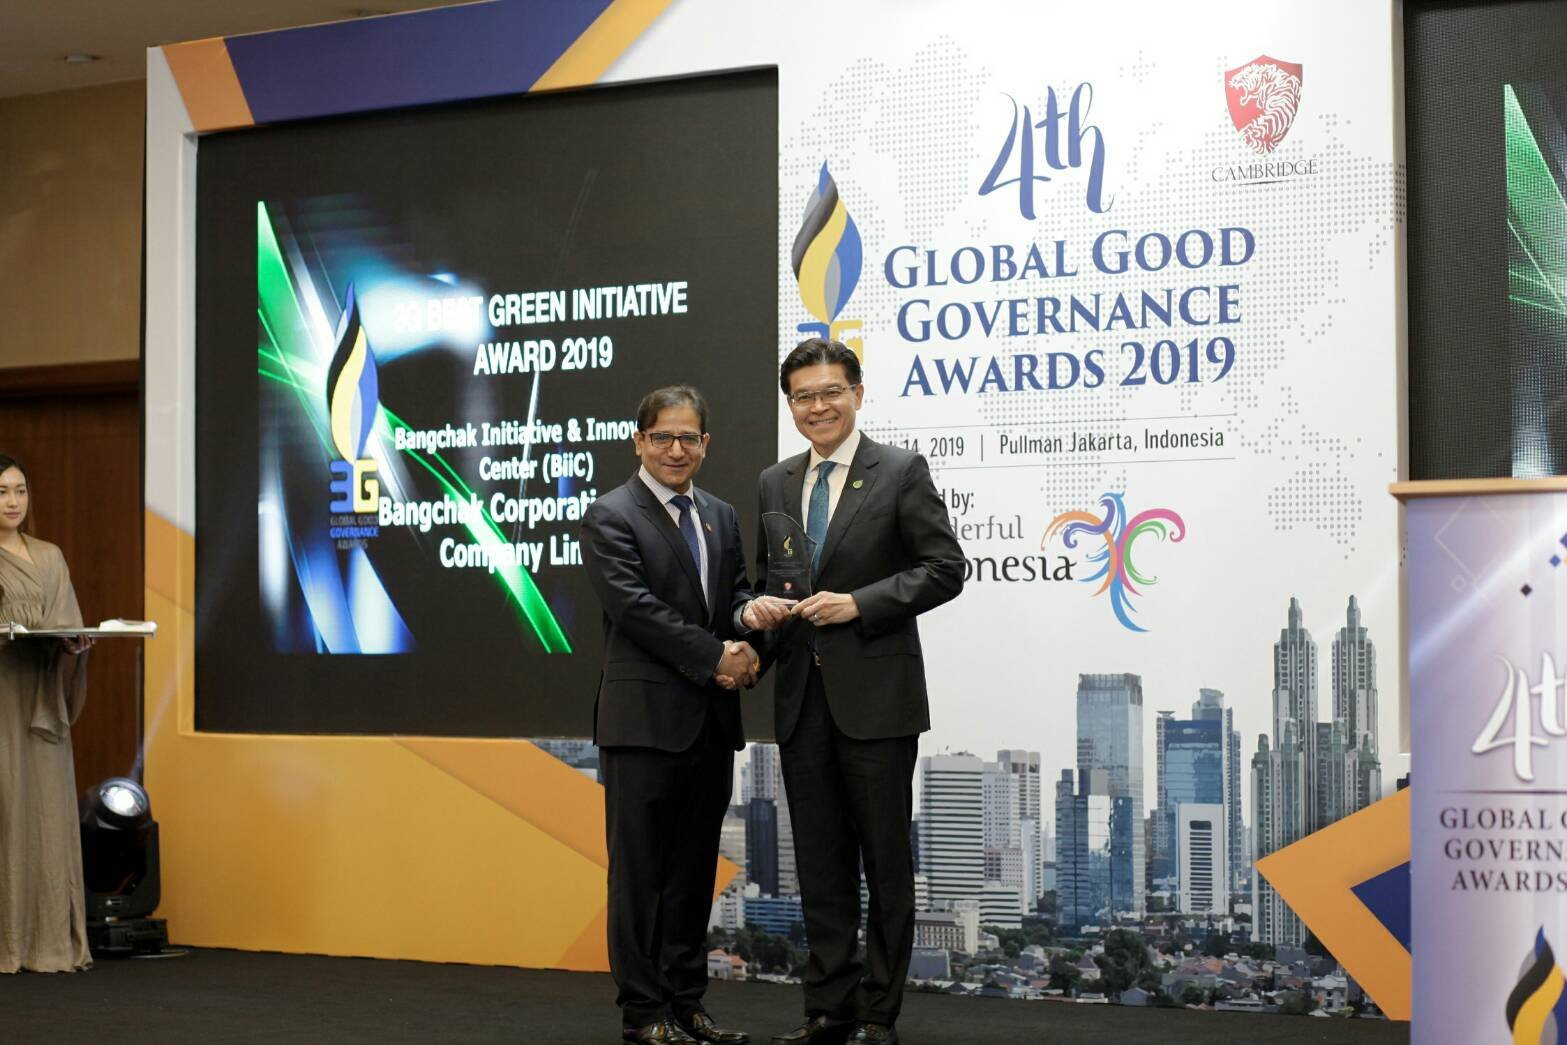 Bangchak Shines at International 3G Awards Event for Second Year in a Row